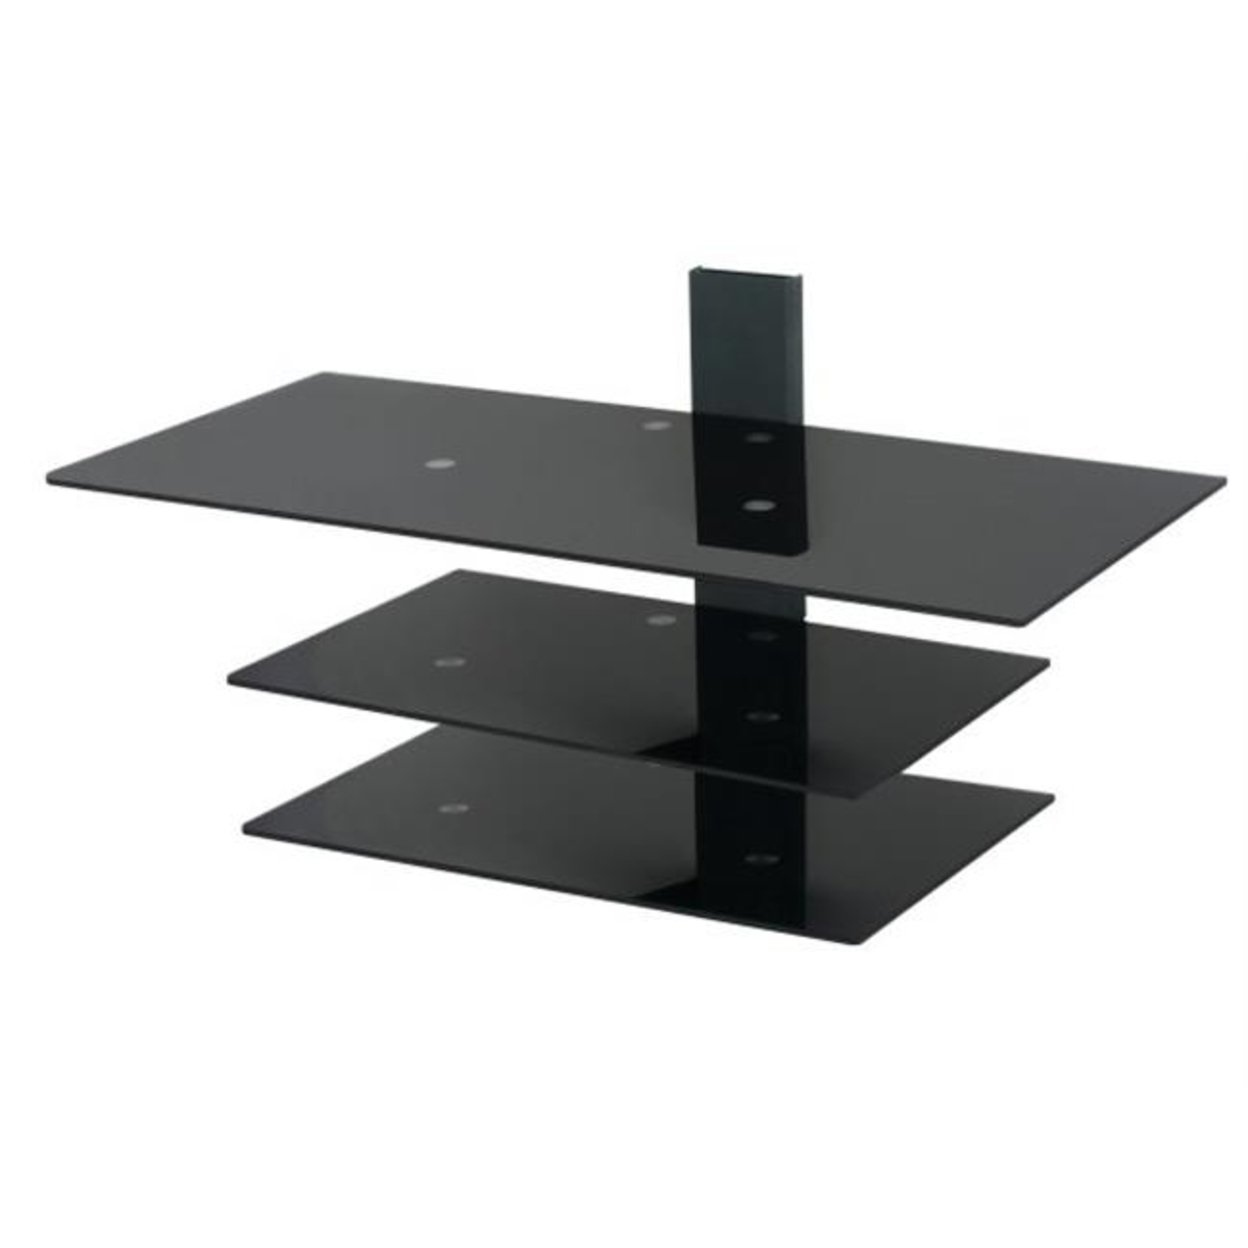 Avf Ps933pb A Wall Mounted Glass Shelving System For Tv Screens Up To 50